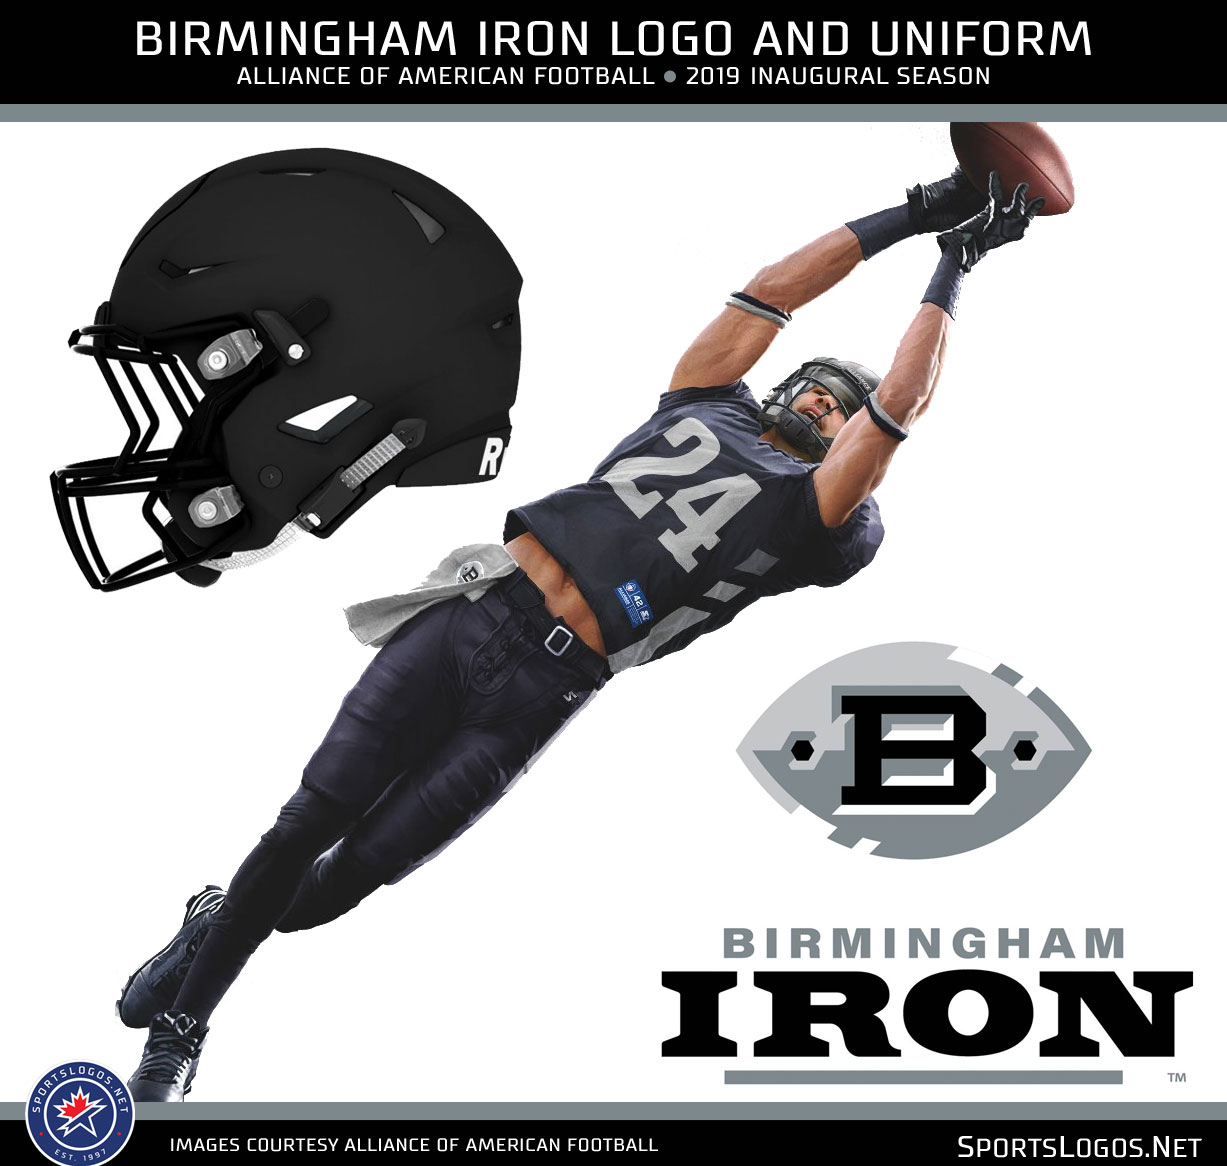 Birmingham-Iron-AAF-Uniforms-2019.jpg